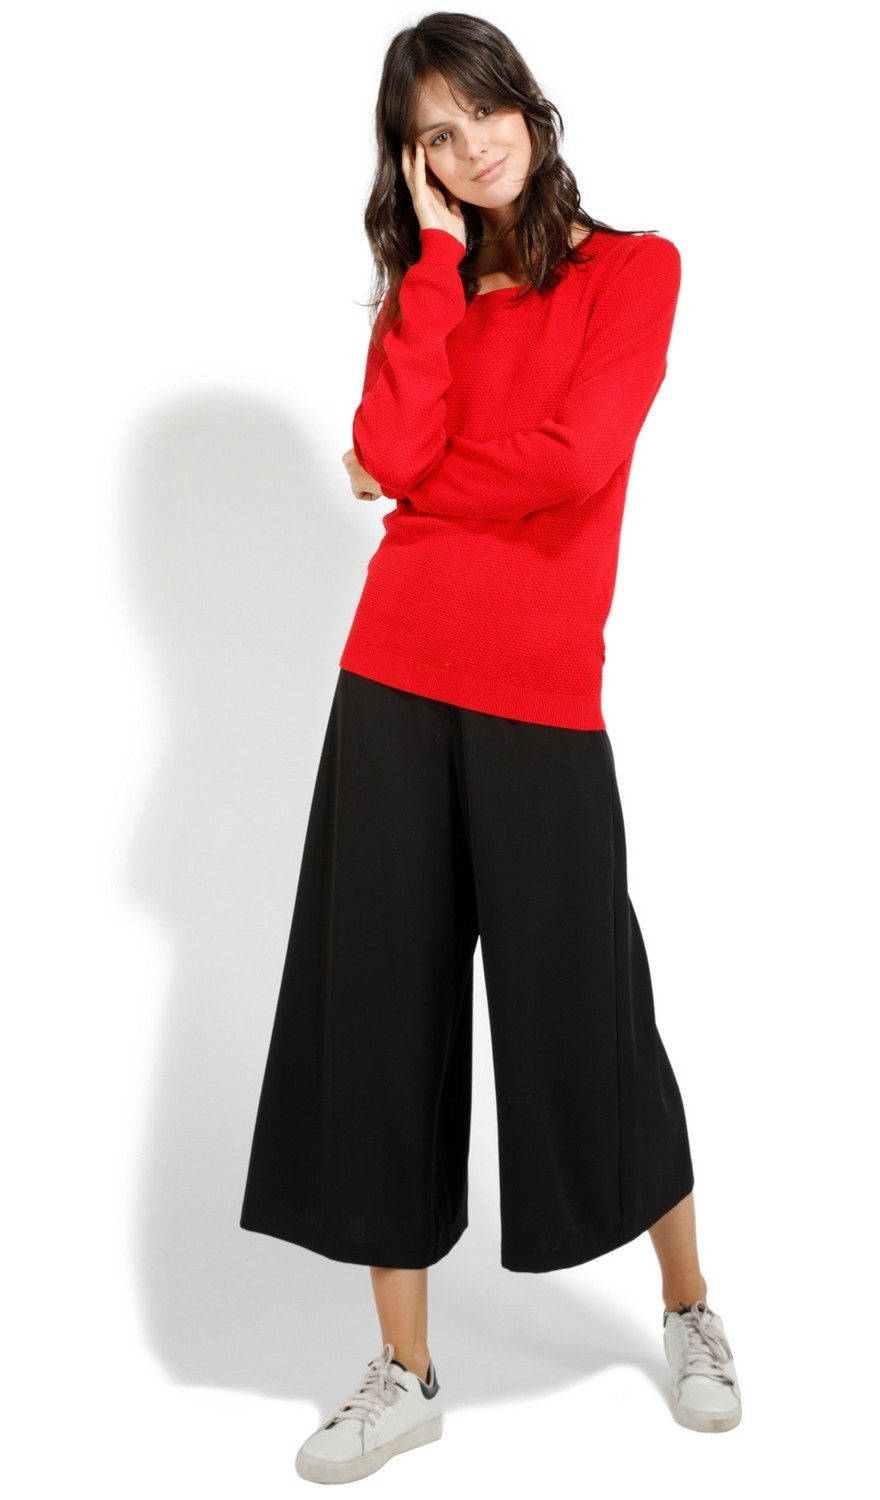 Assuili Round Neck Zip Back Sweater in Red